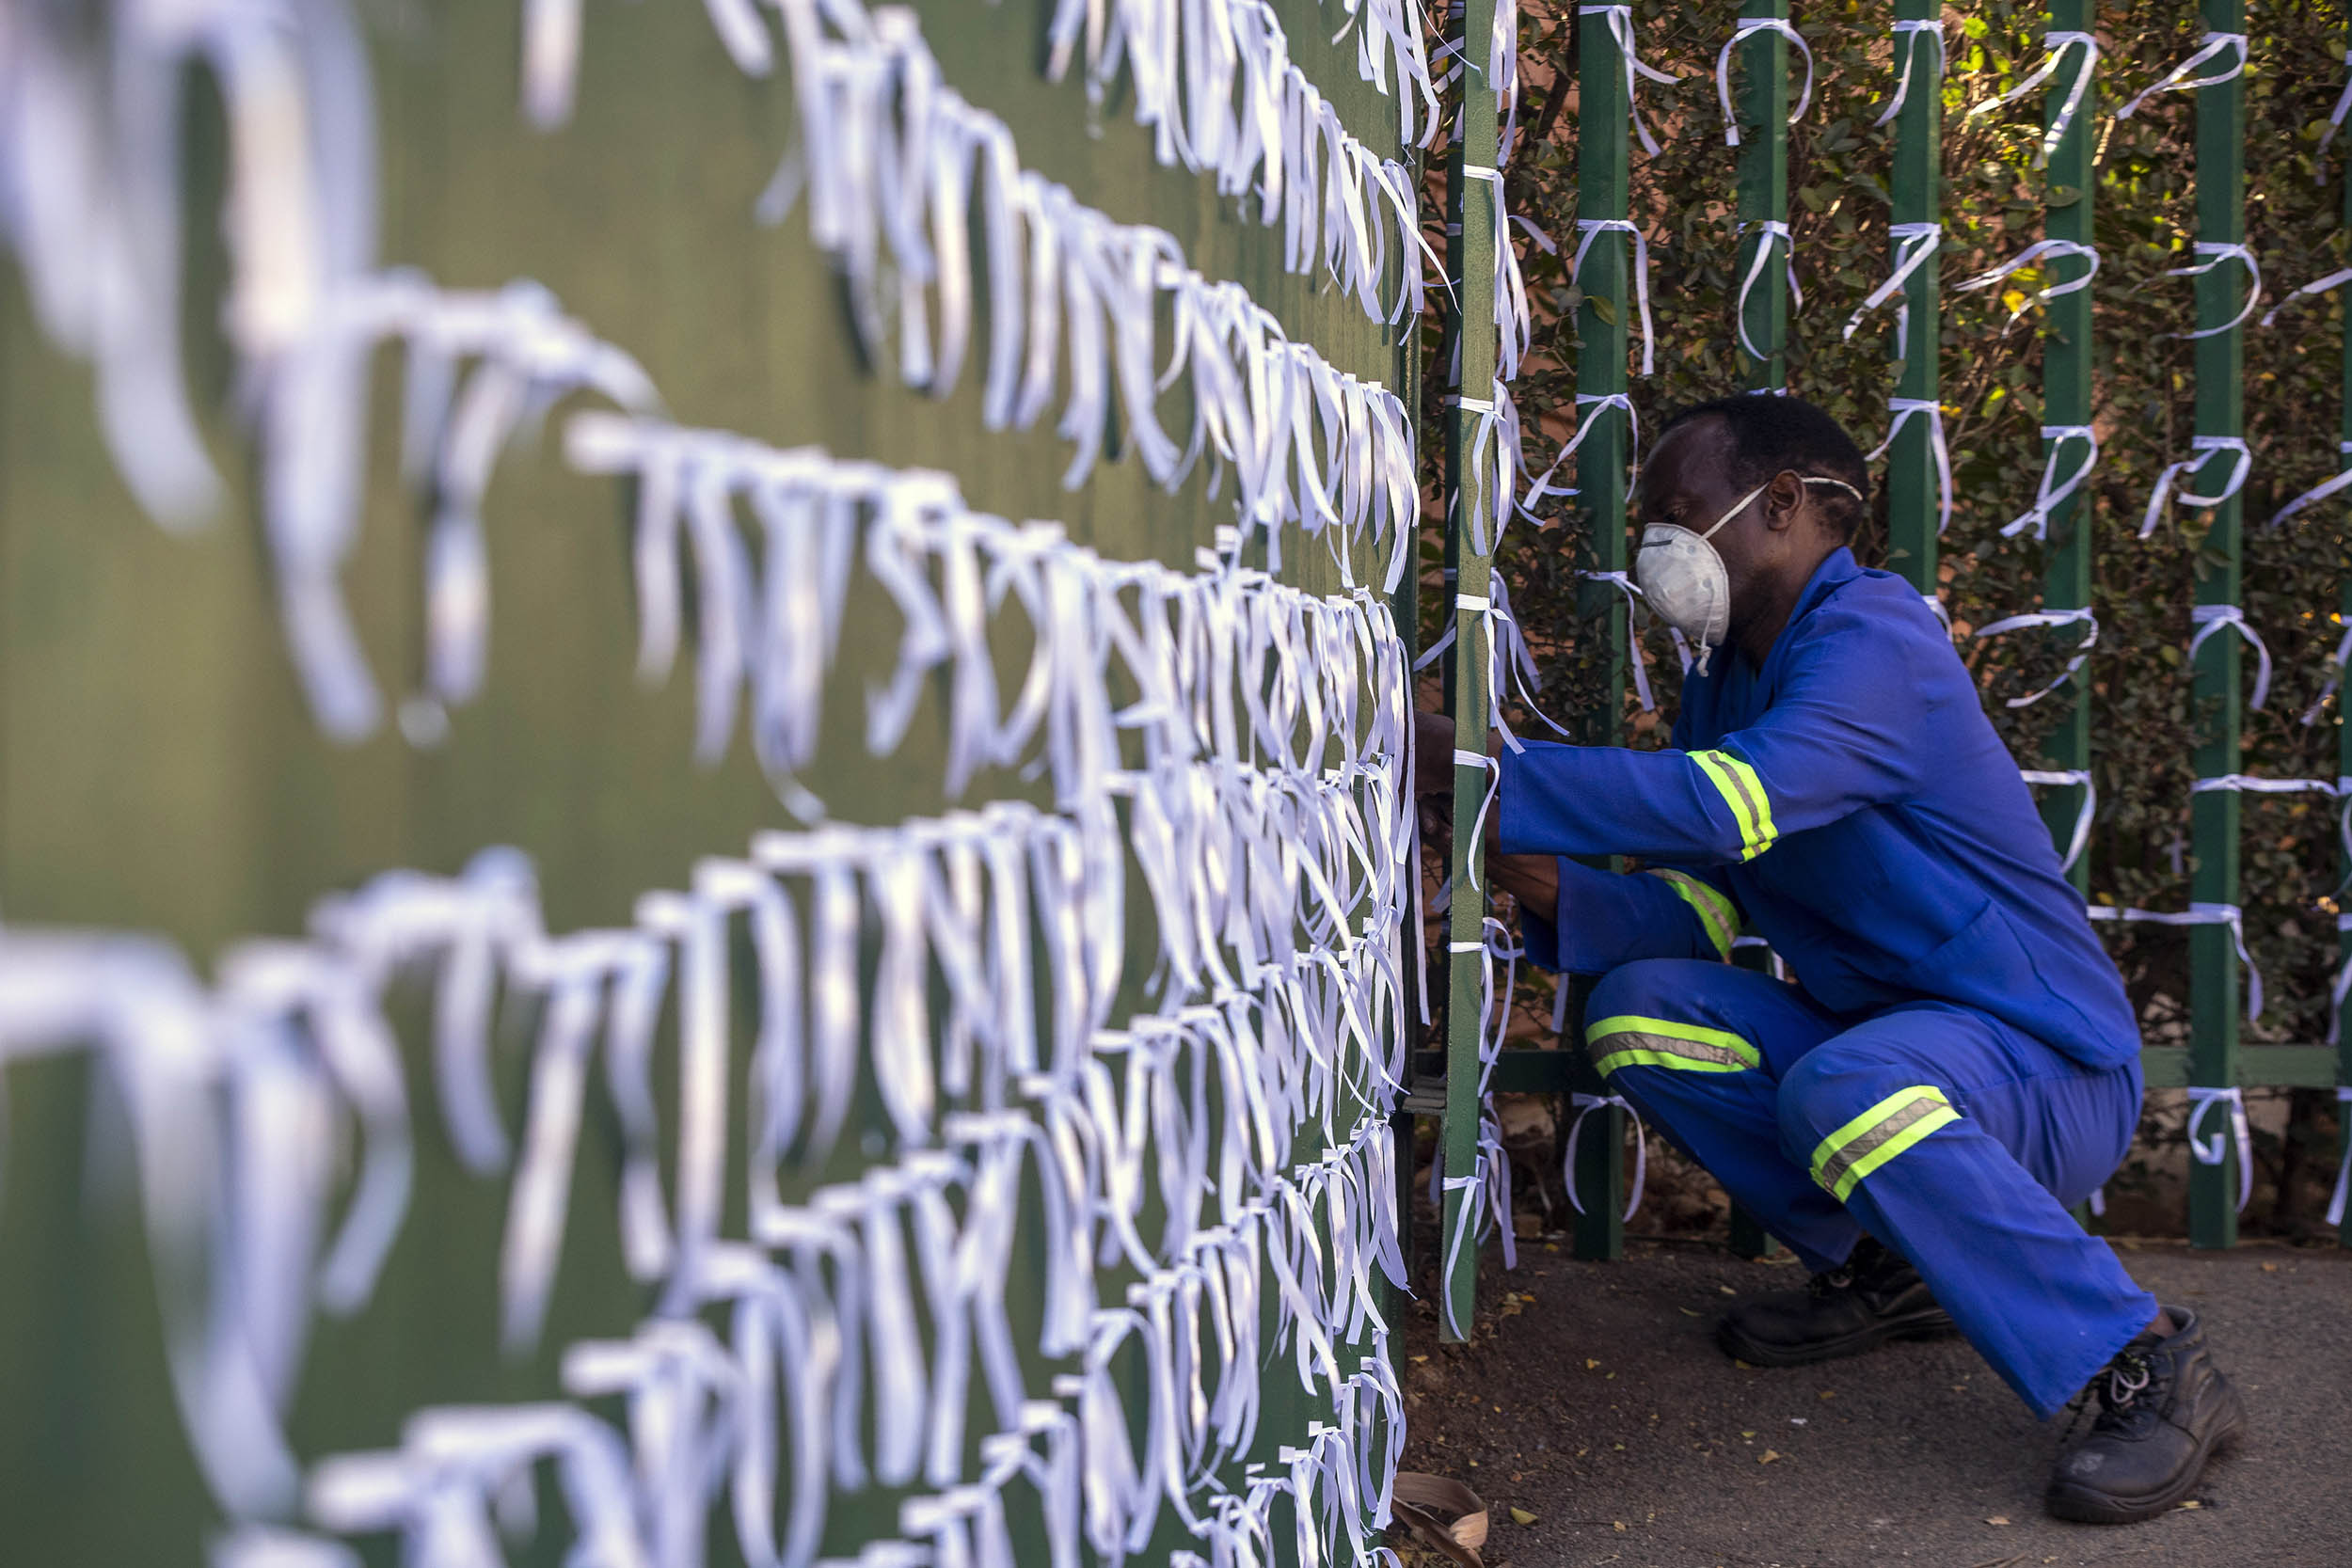 A caretaker ties ribbons onto a fence to represent South Africans who died from Covid-19, at St James Presbyterian church in Johannesburg, South Africa, on Wednesday, July 29.